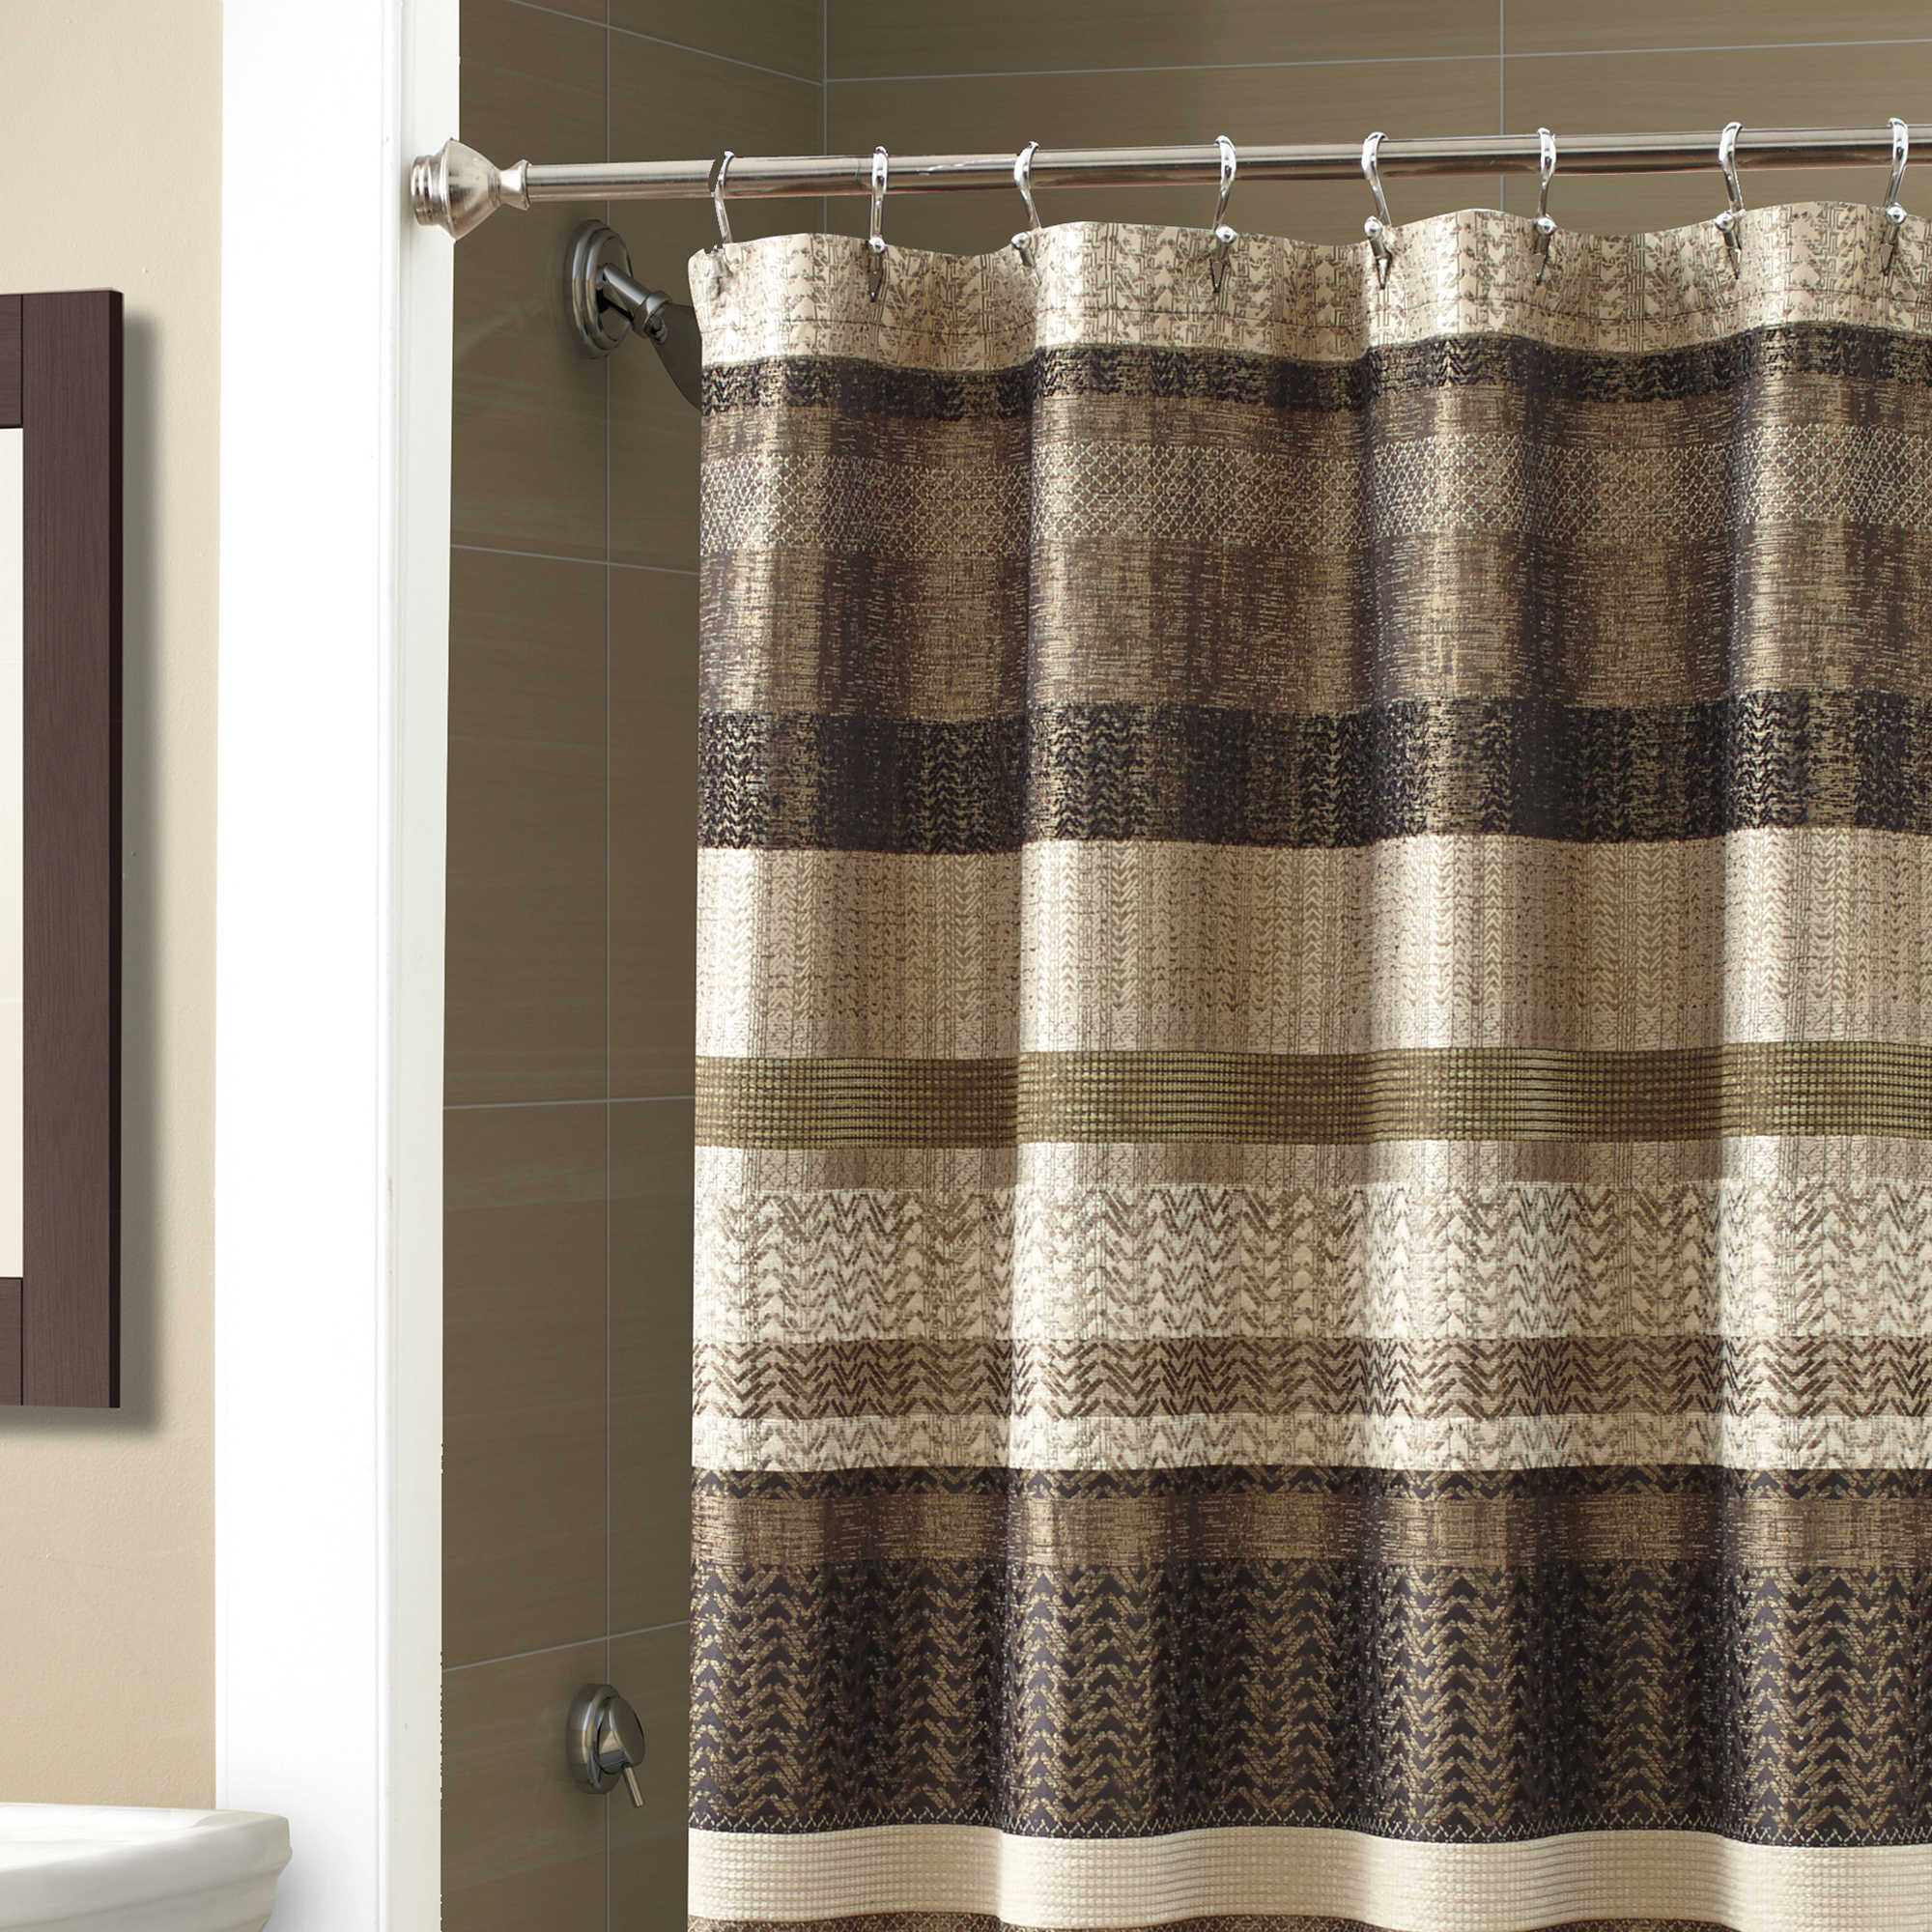 Curtains Olive Green Shower Curtain Kelly For Proportions 2000 X